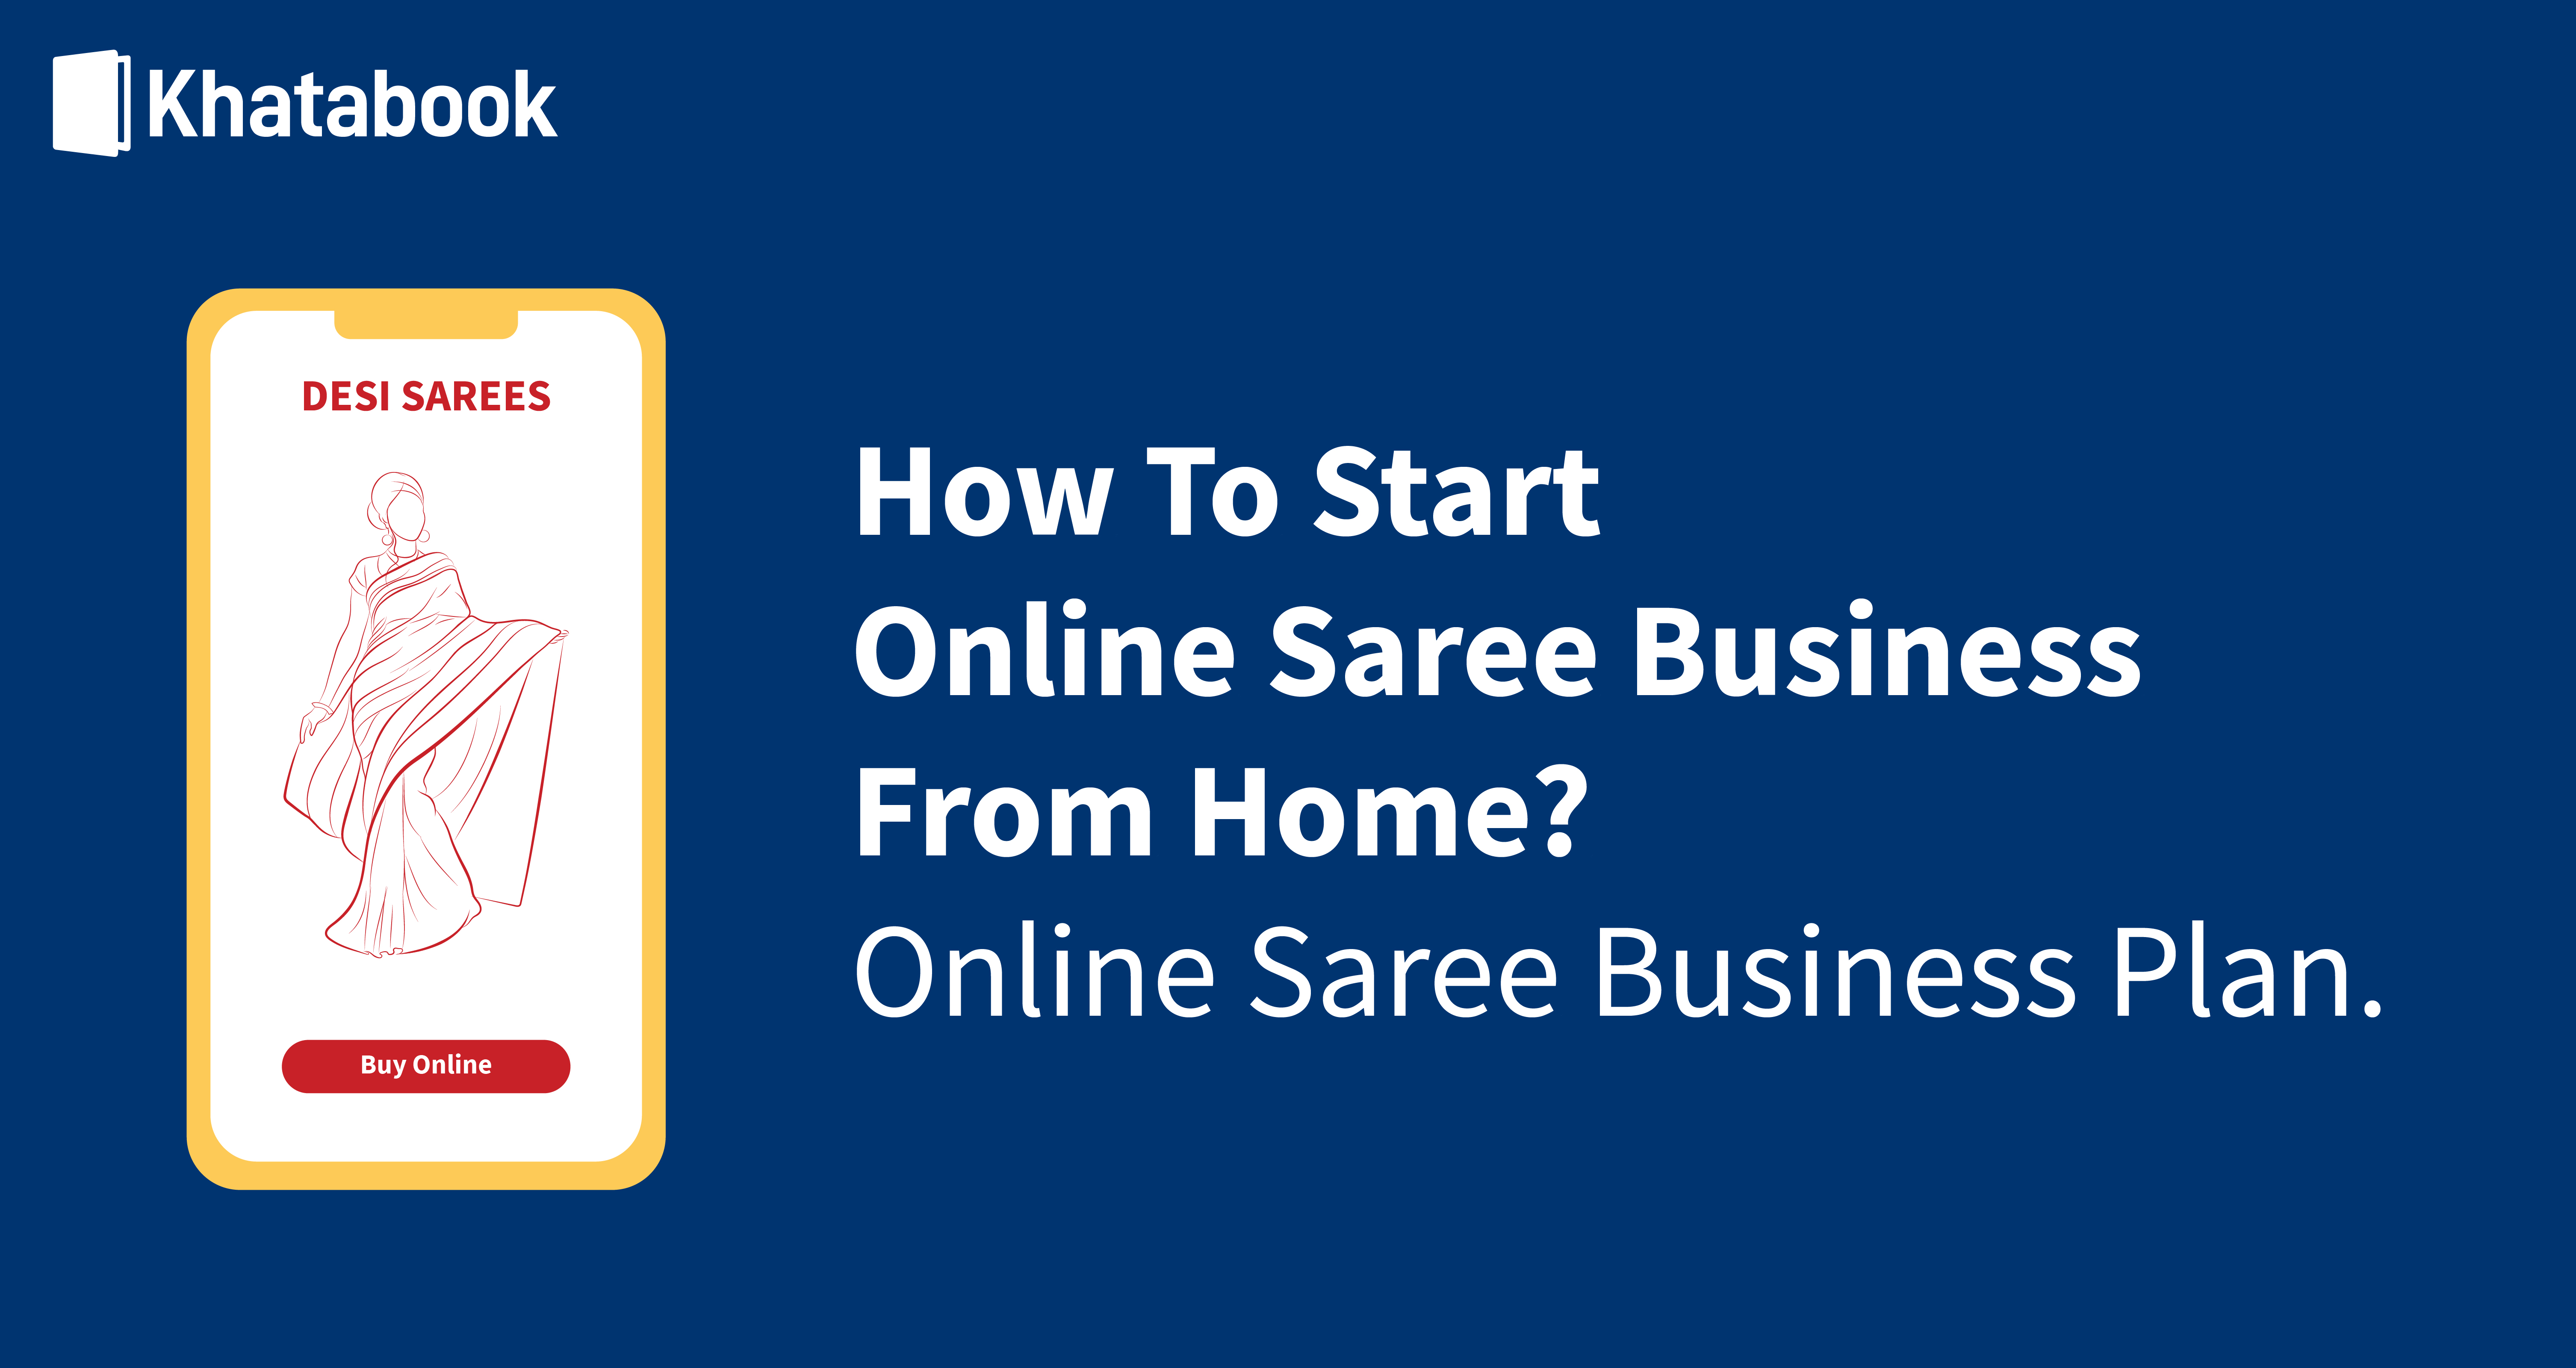 How to Start An Online Saree Business from Home